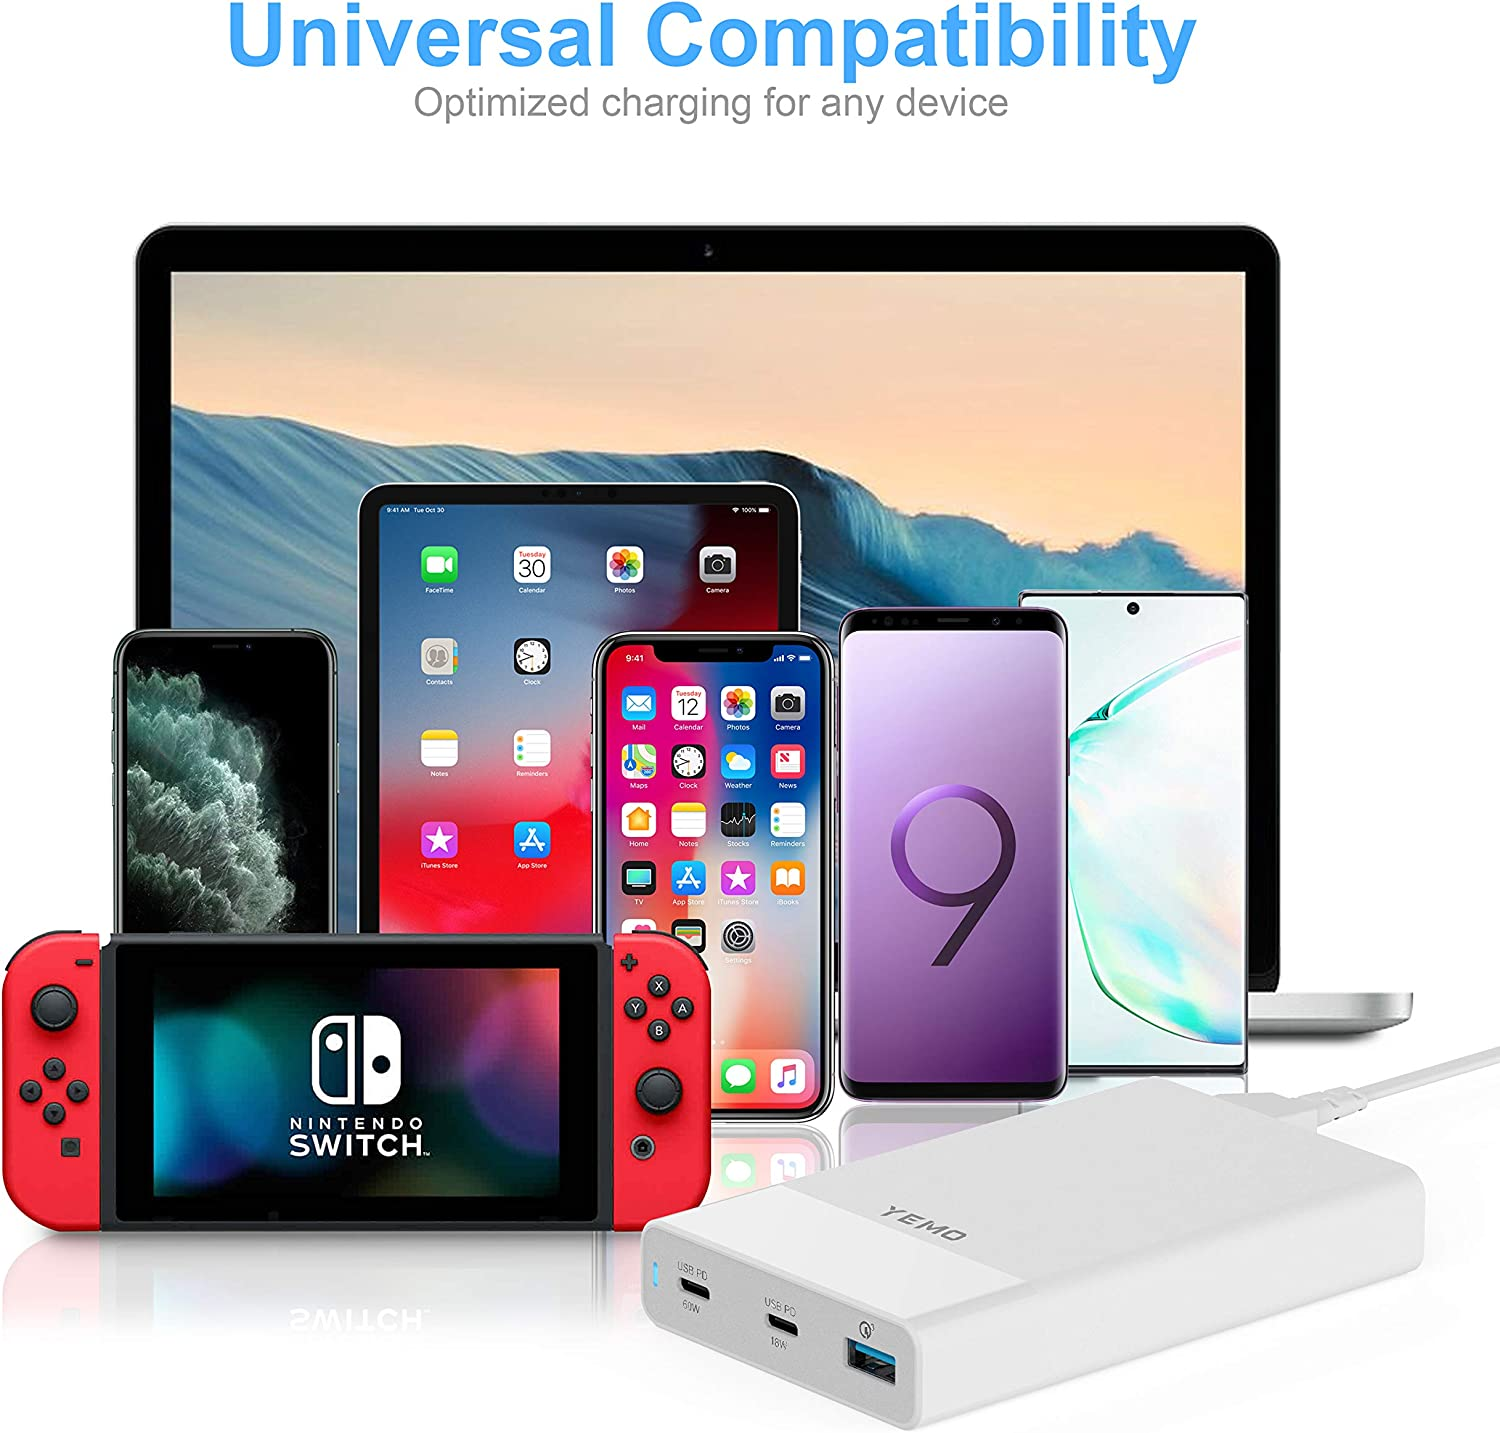 Pixel USB C 60W/&18W PD /& QC 3.0 18W Power Adapter for MacBook Pro//Air iPad Pro USB C Charger YEMO Type-C Charging Station with Power Delivery Total 90W 3-Port Galaxy and More iPhone 11//Pro//Max